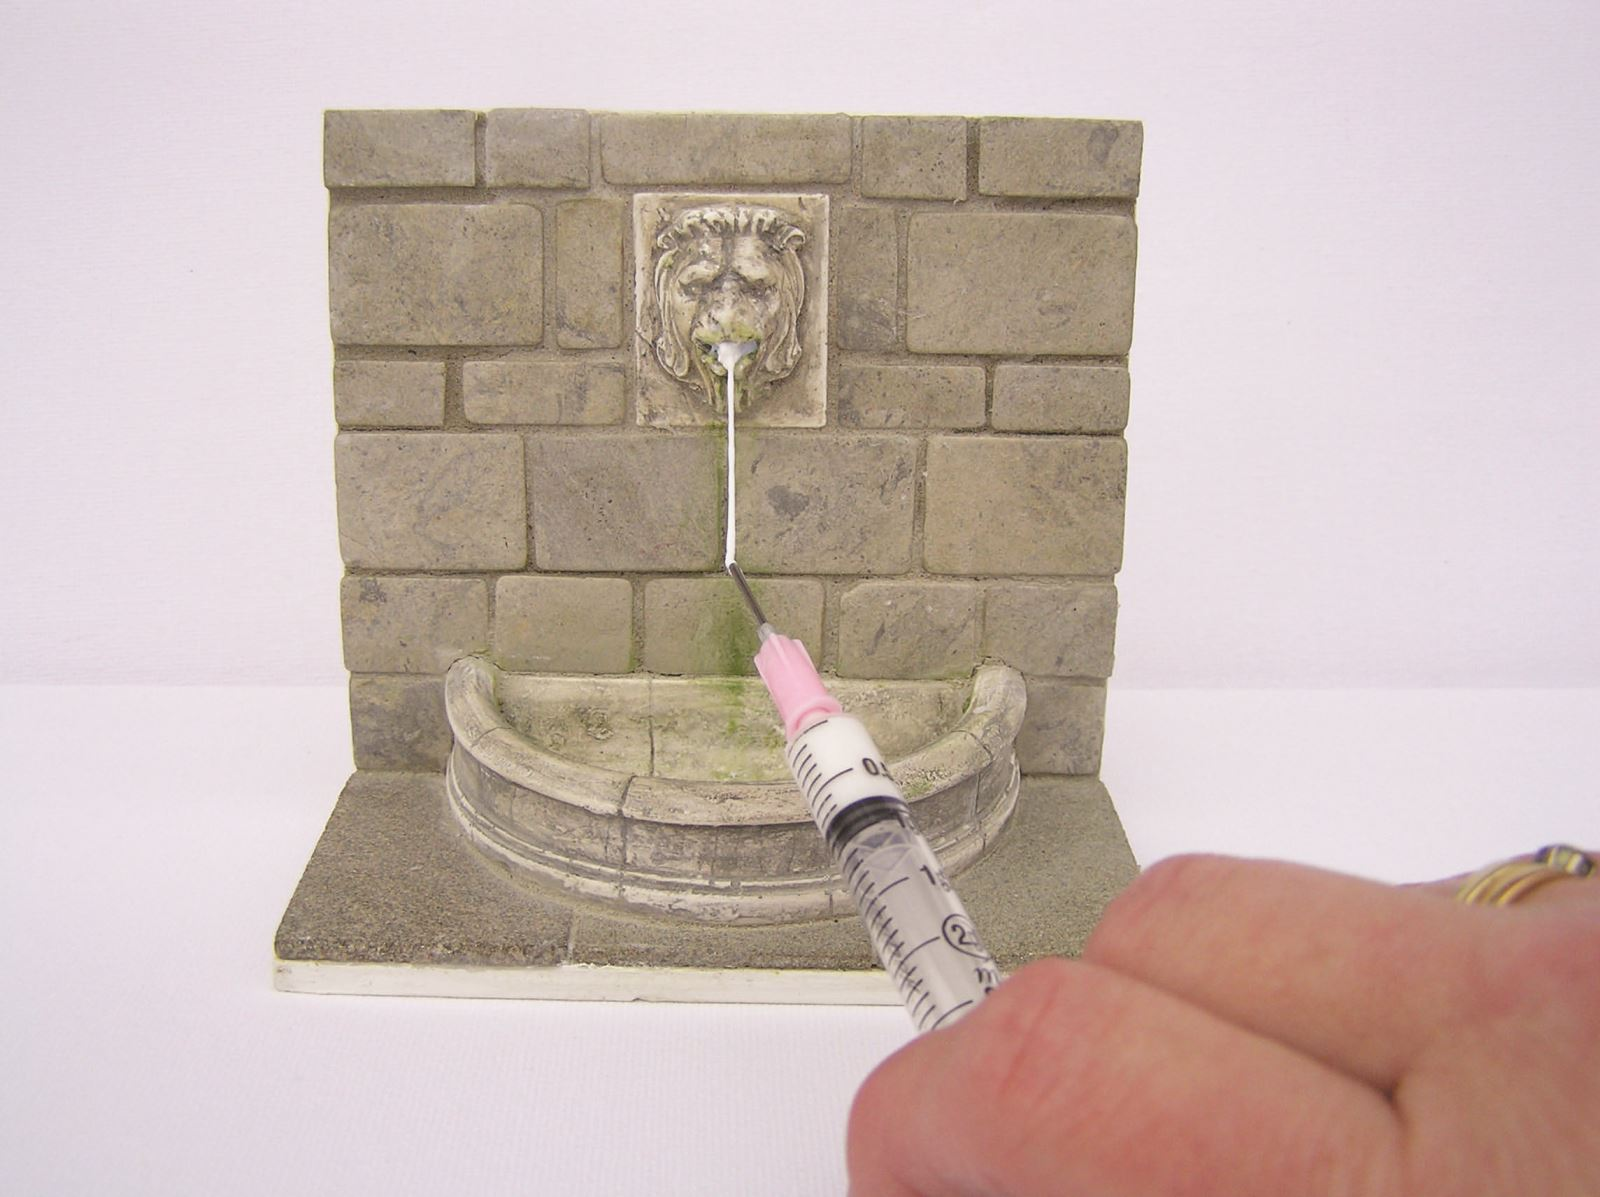 Miniature Masterclass: How To Create Water